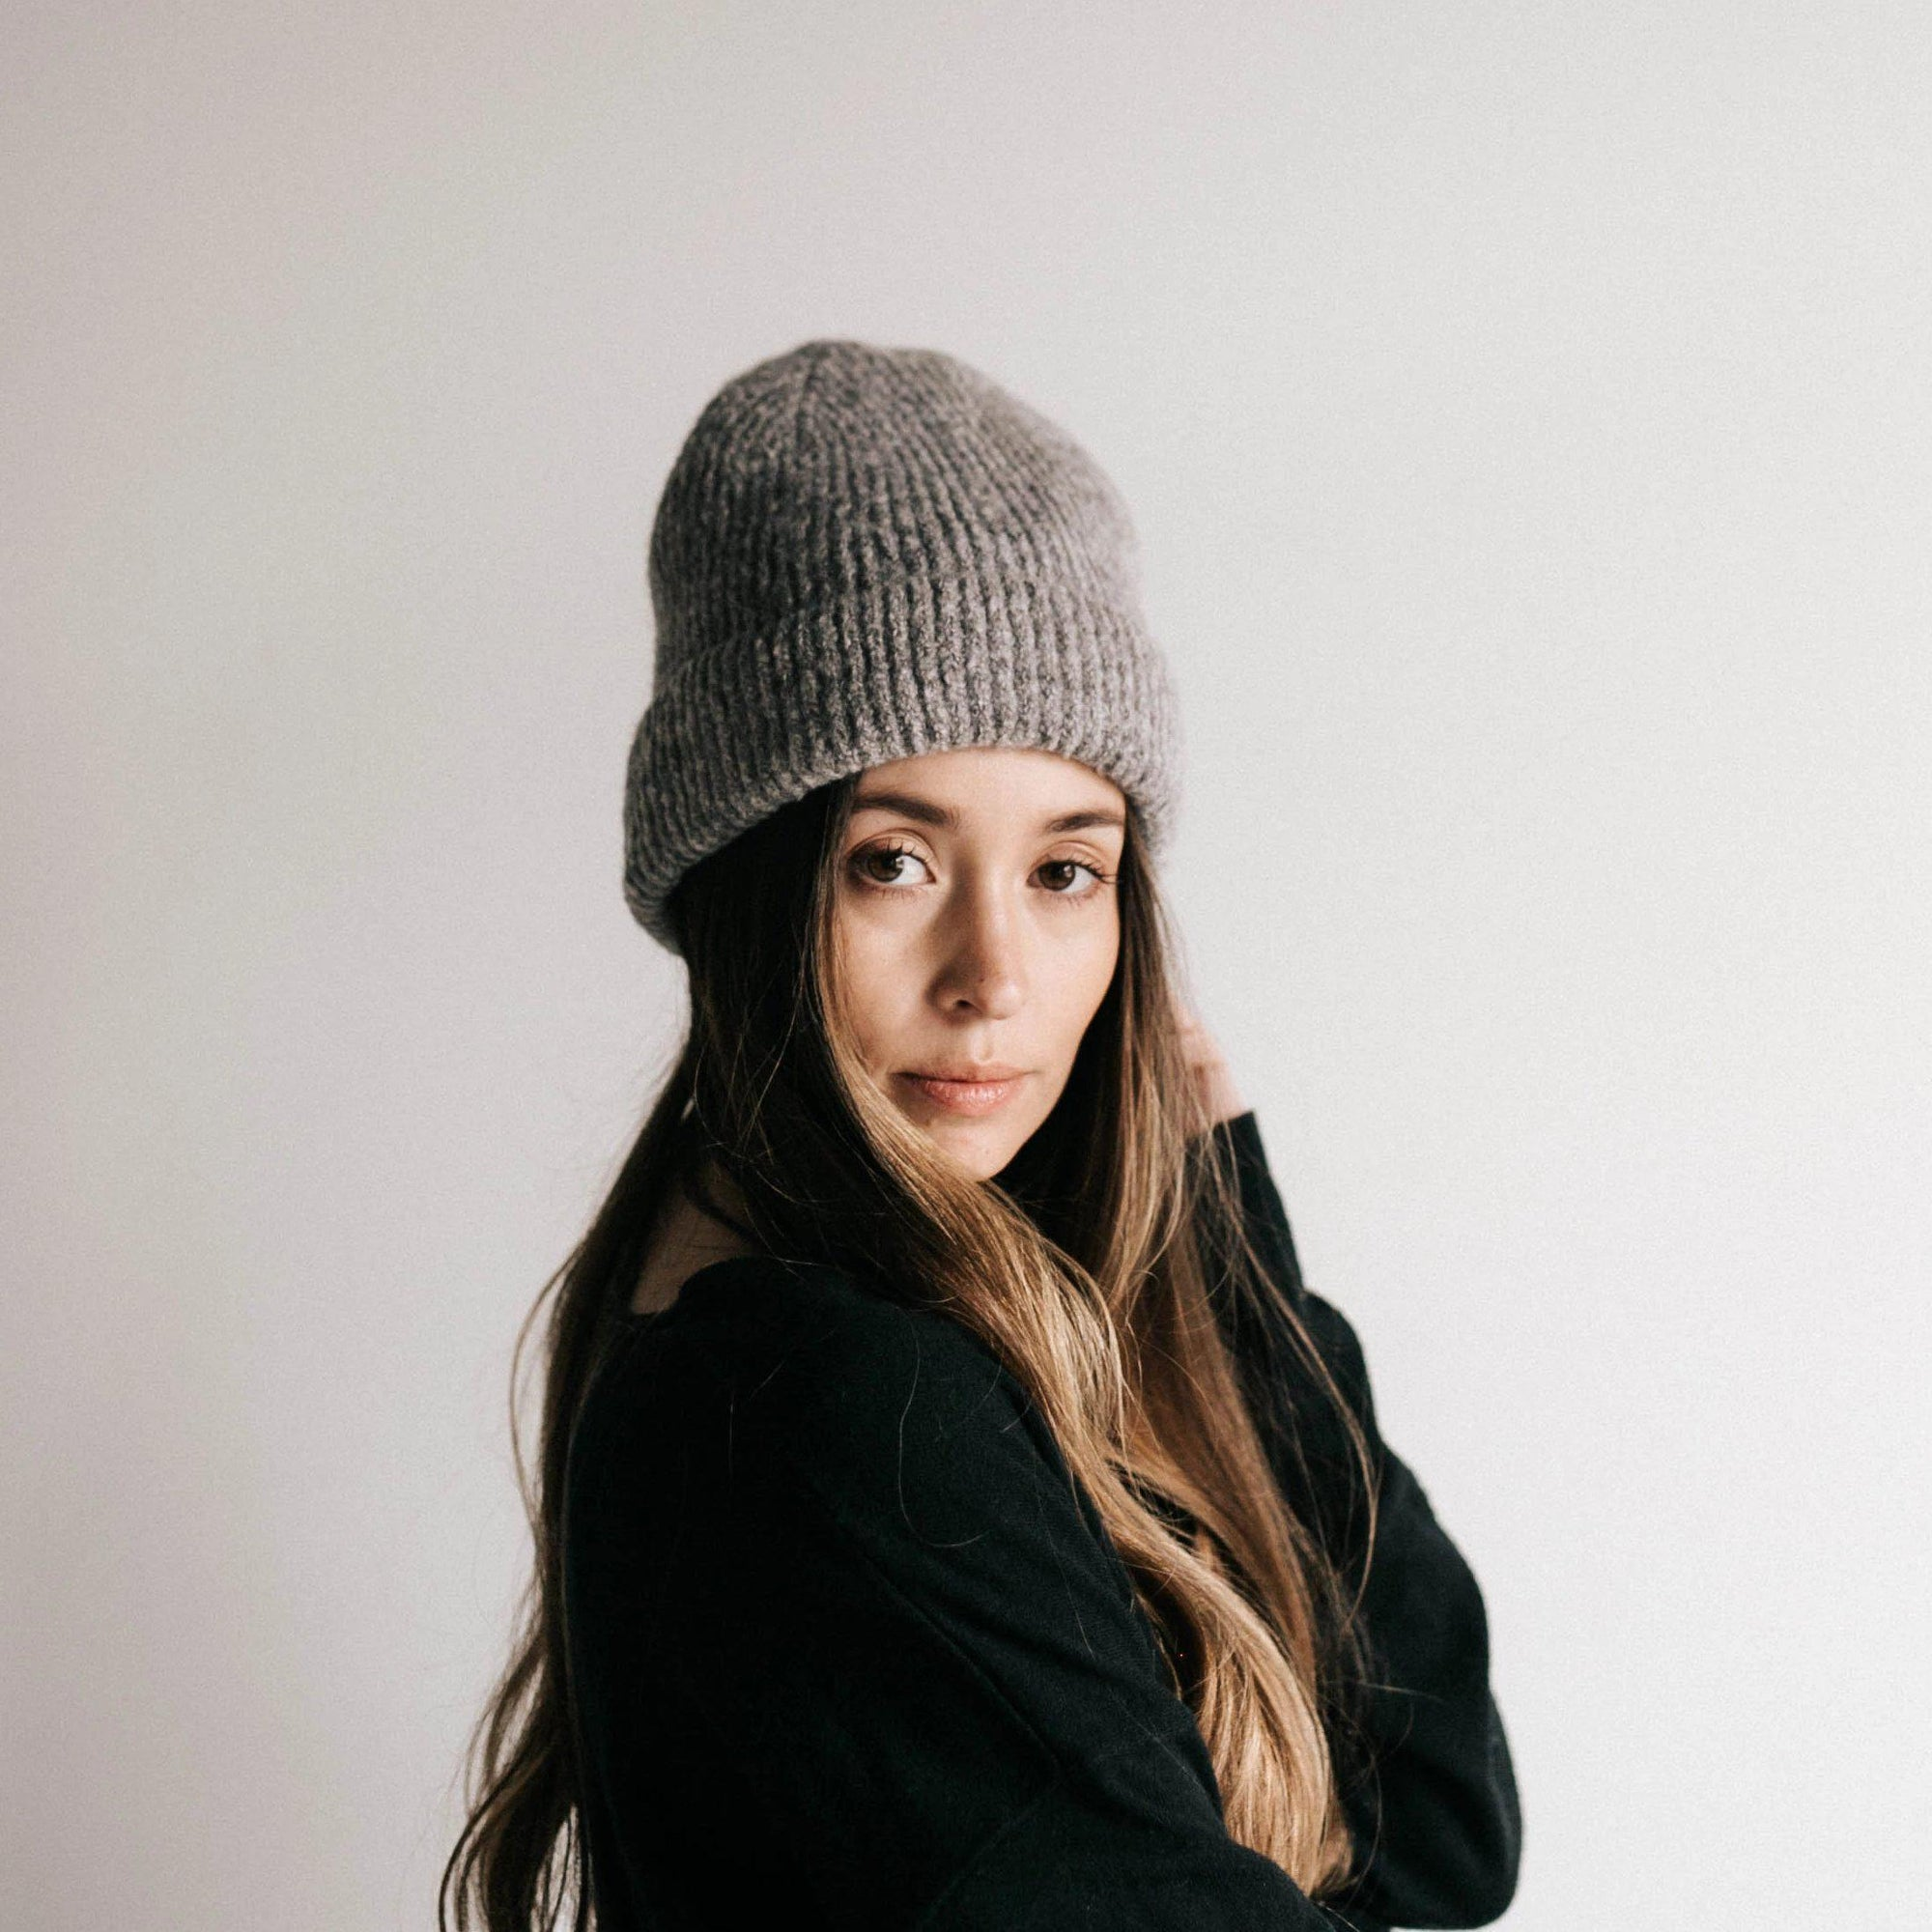 GIGI PIP Hats for Women- Ava Beanie - Grey-Beanie